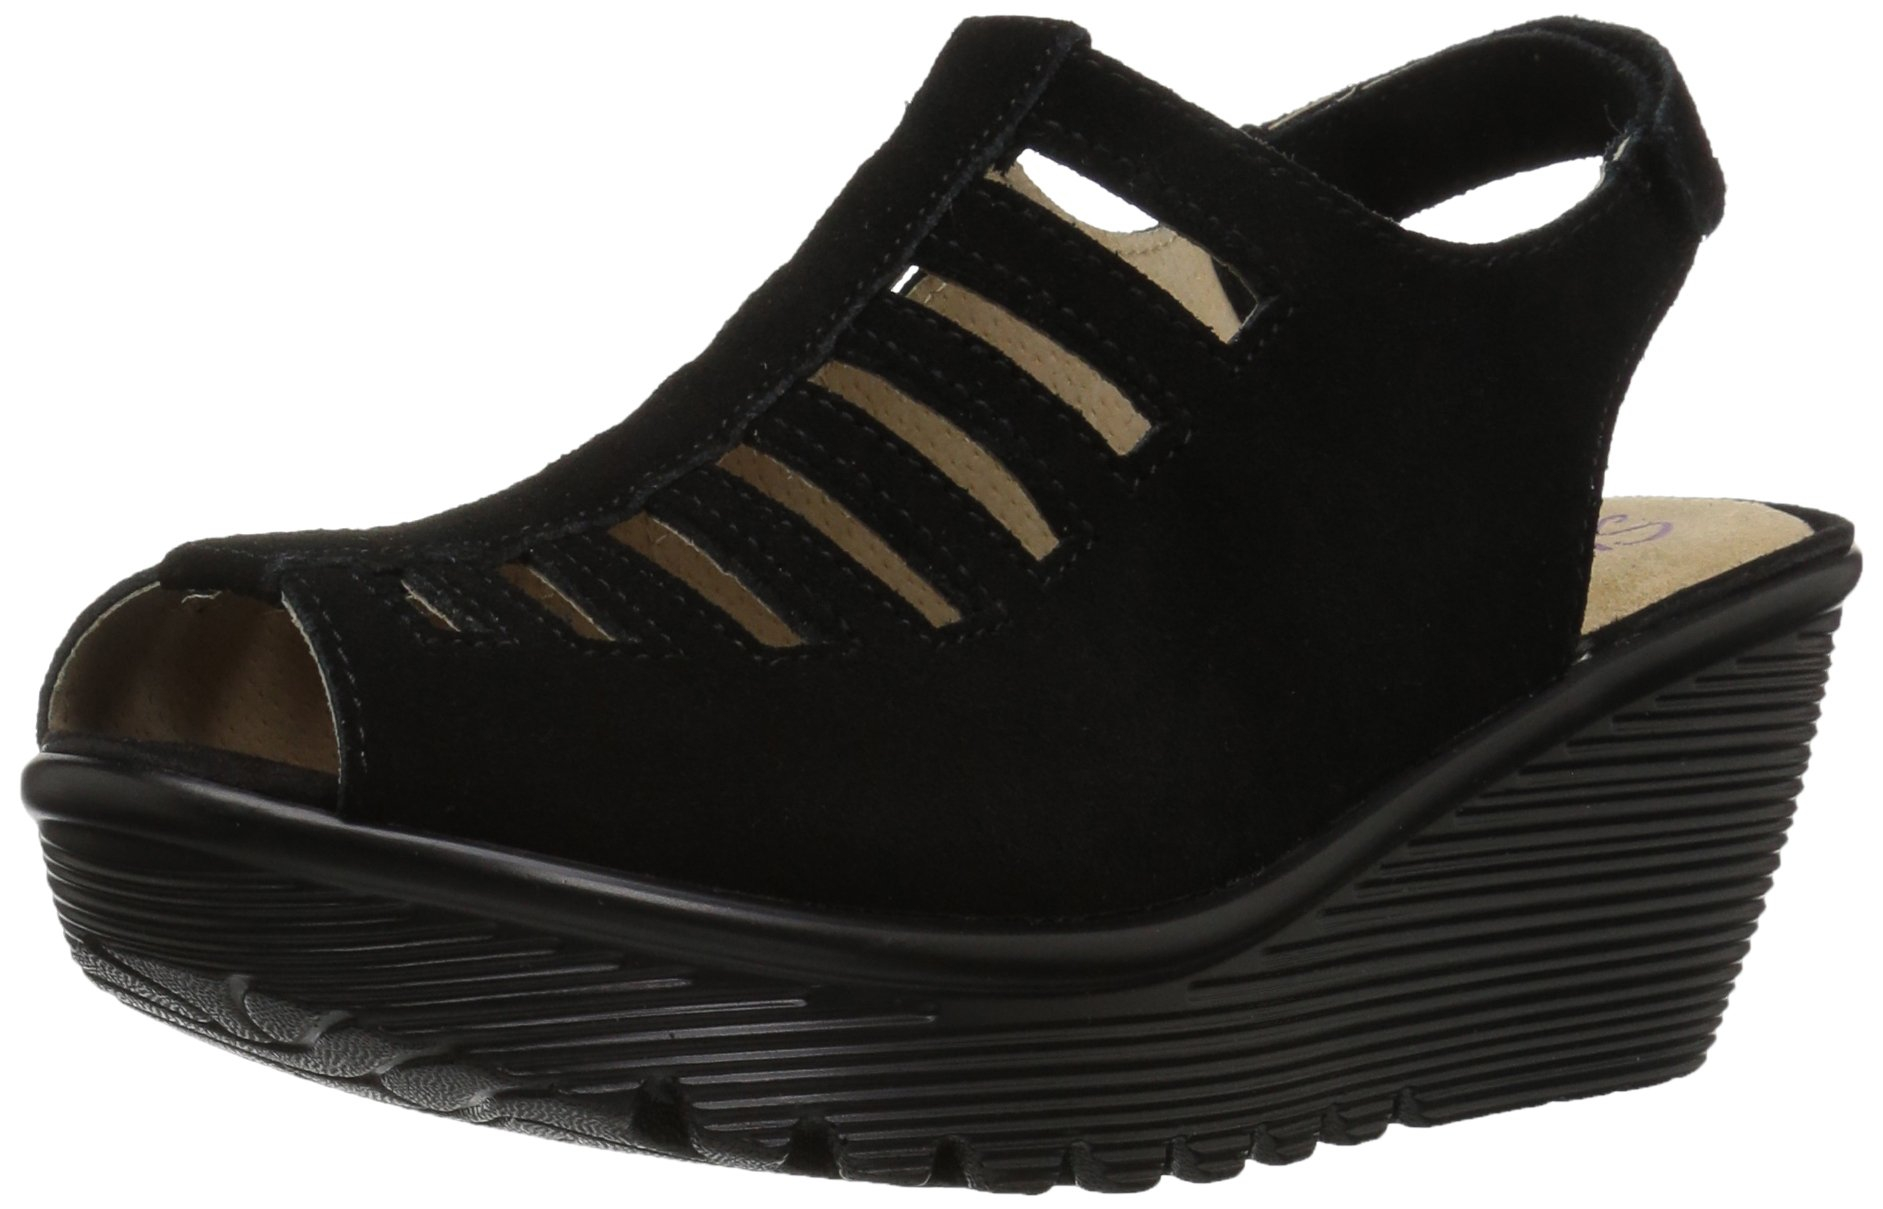 Skechers Women's Parallel-Trapezoid Wedge Sandal,Black,8.5 M US